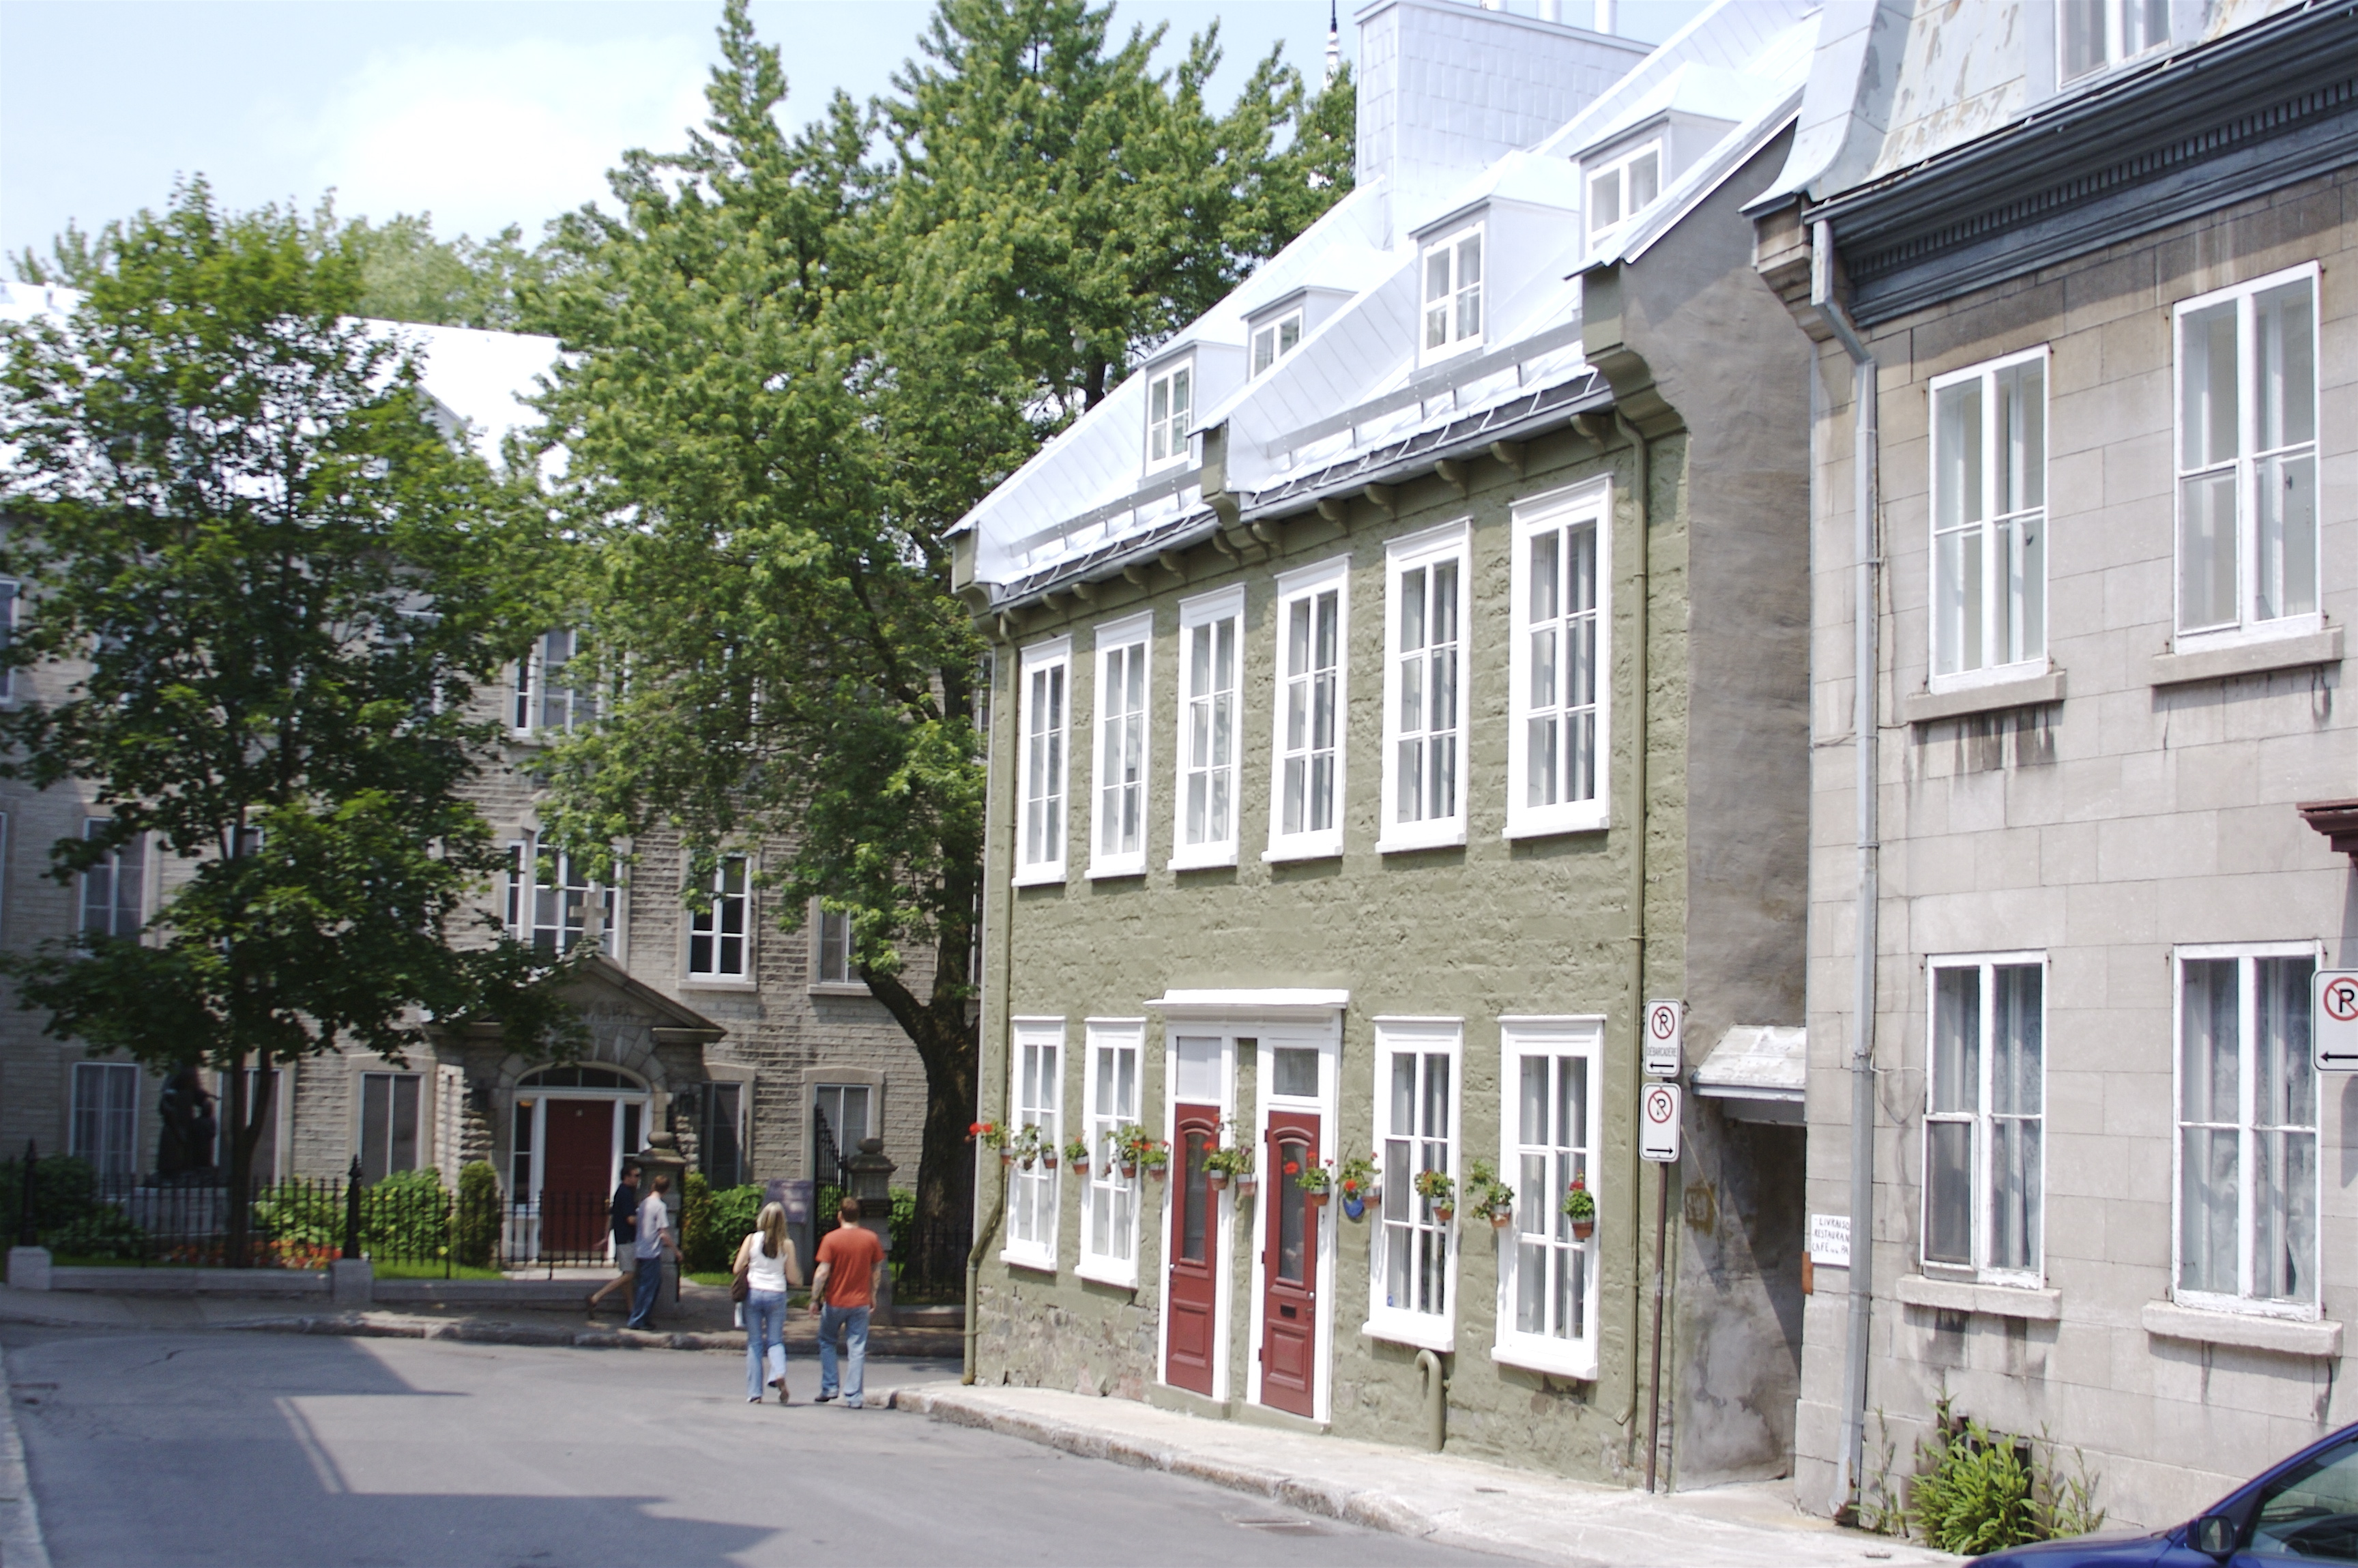 File:Old Quebec Olive Sided House.jpg - Wikimedia Commons